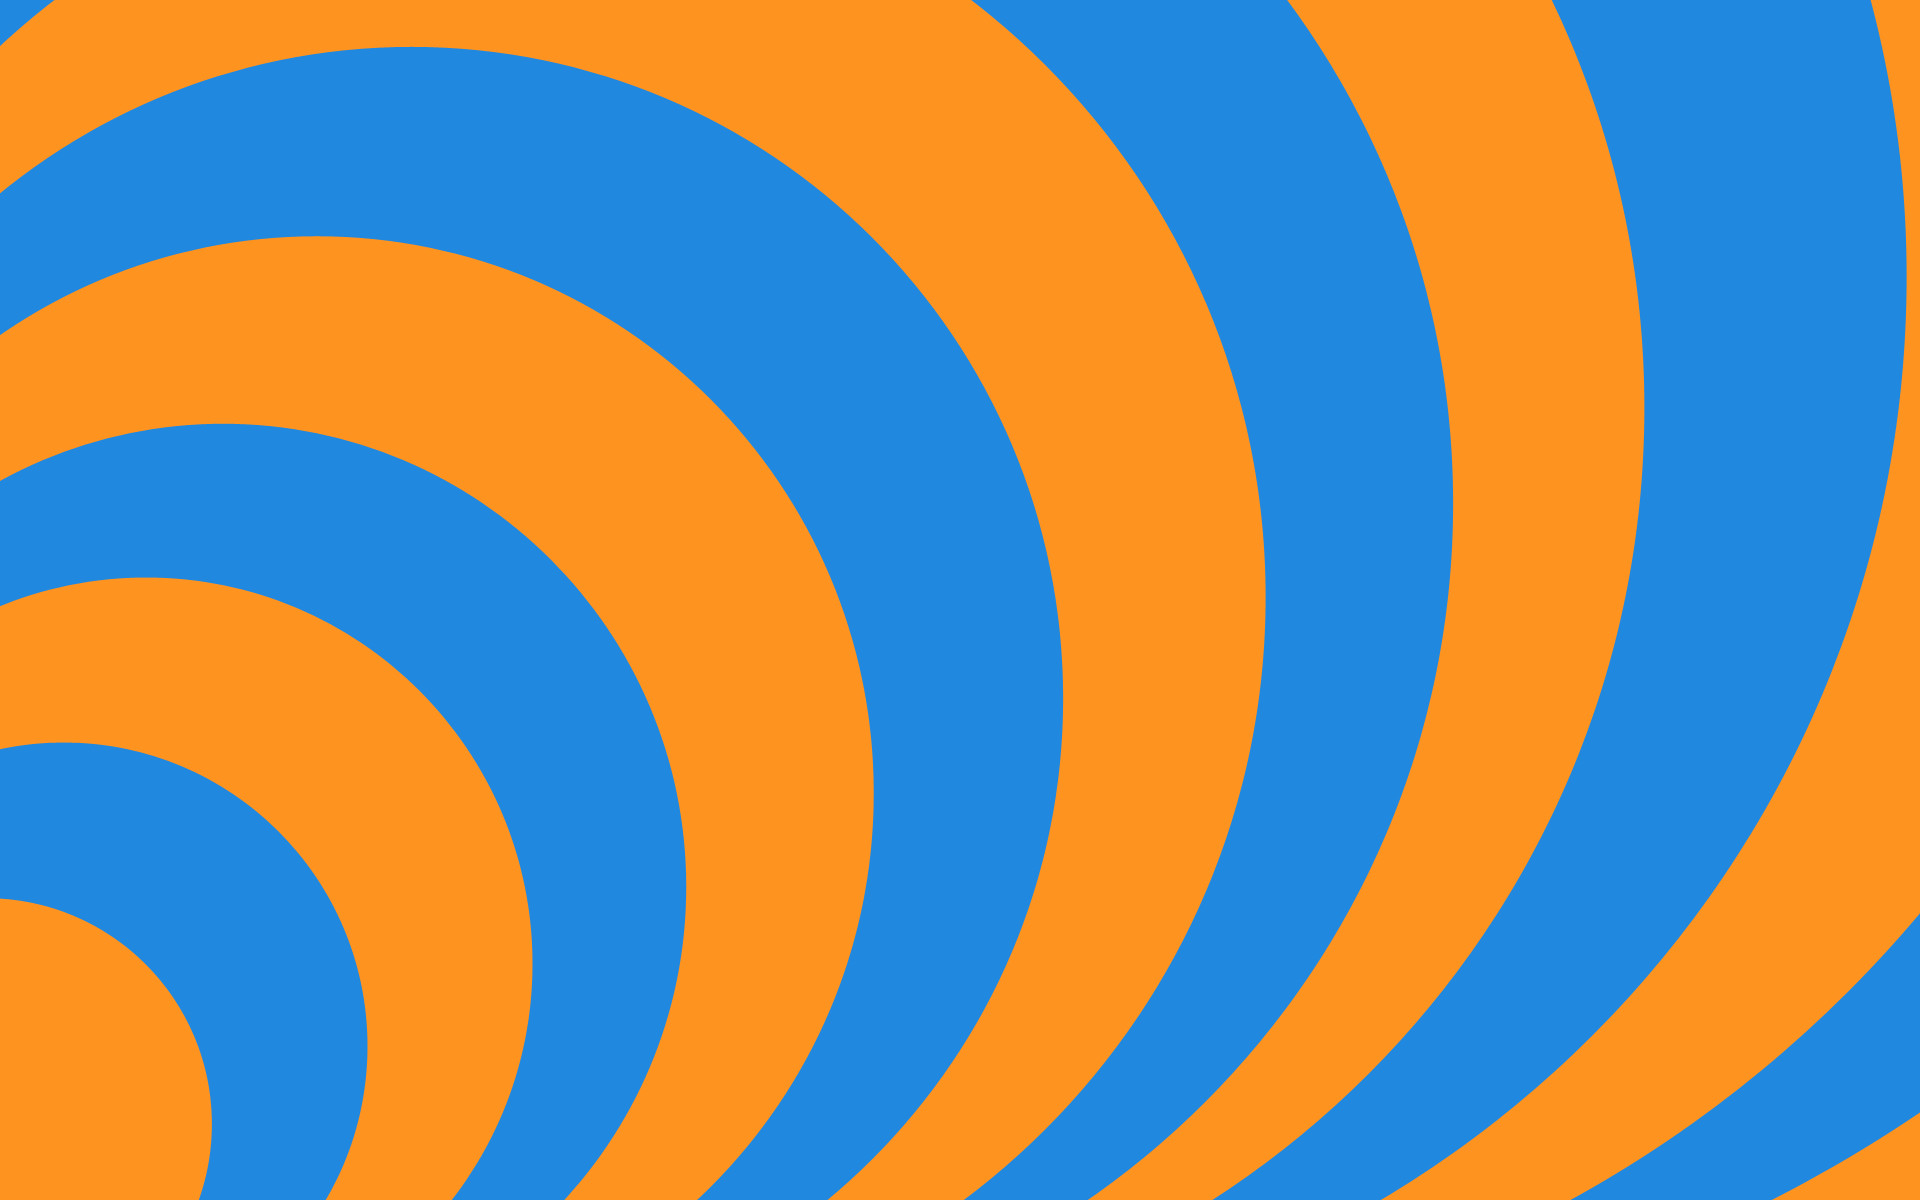 Concentric___Orange_and_Blue.png (1920×1200)